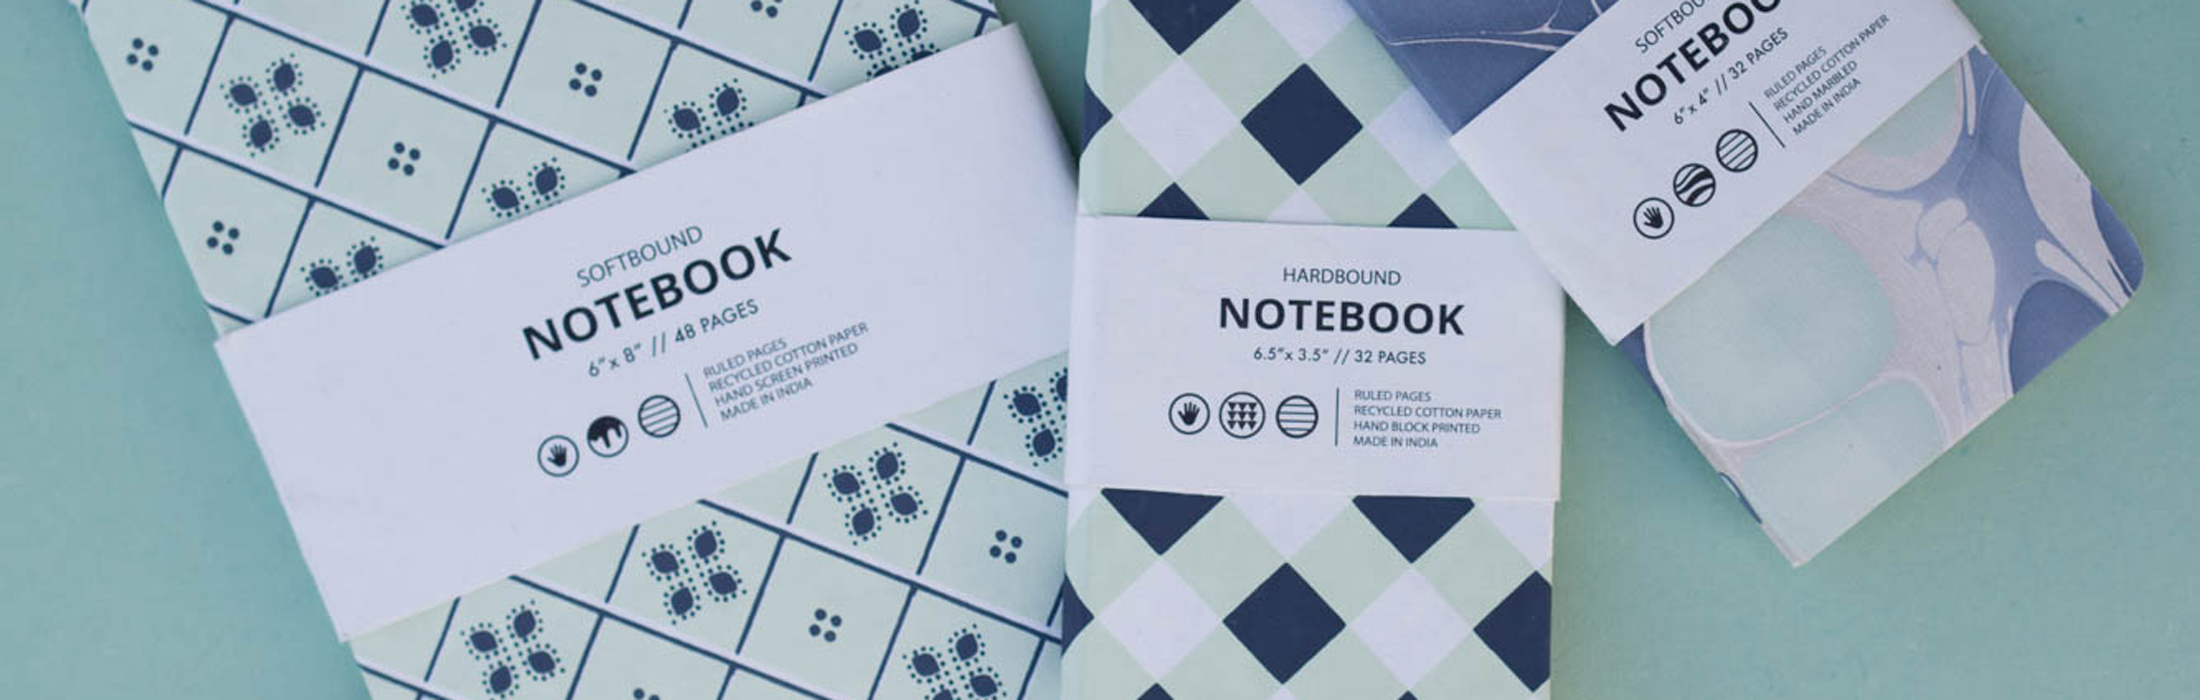 Soft bound notebooks